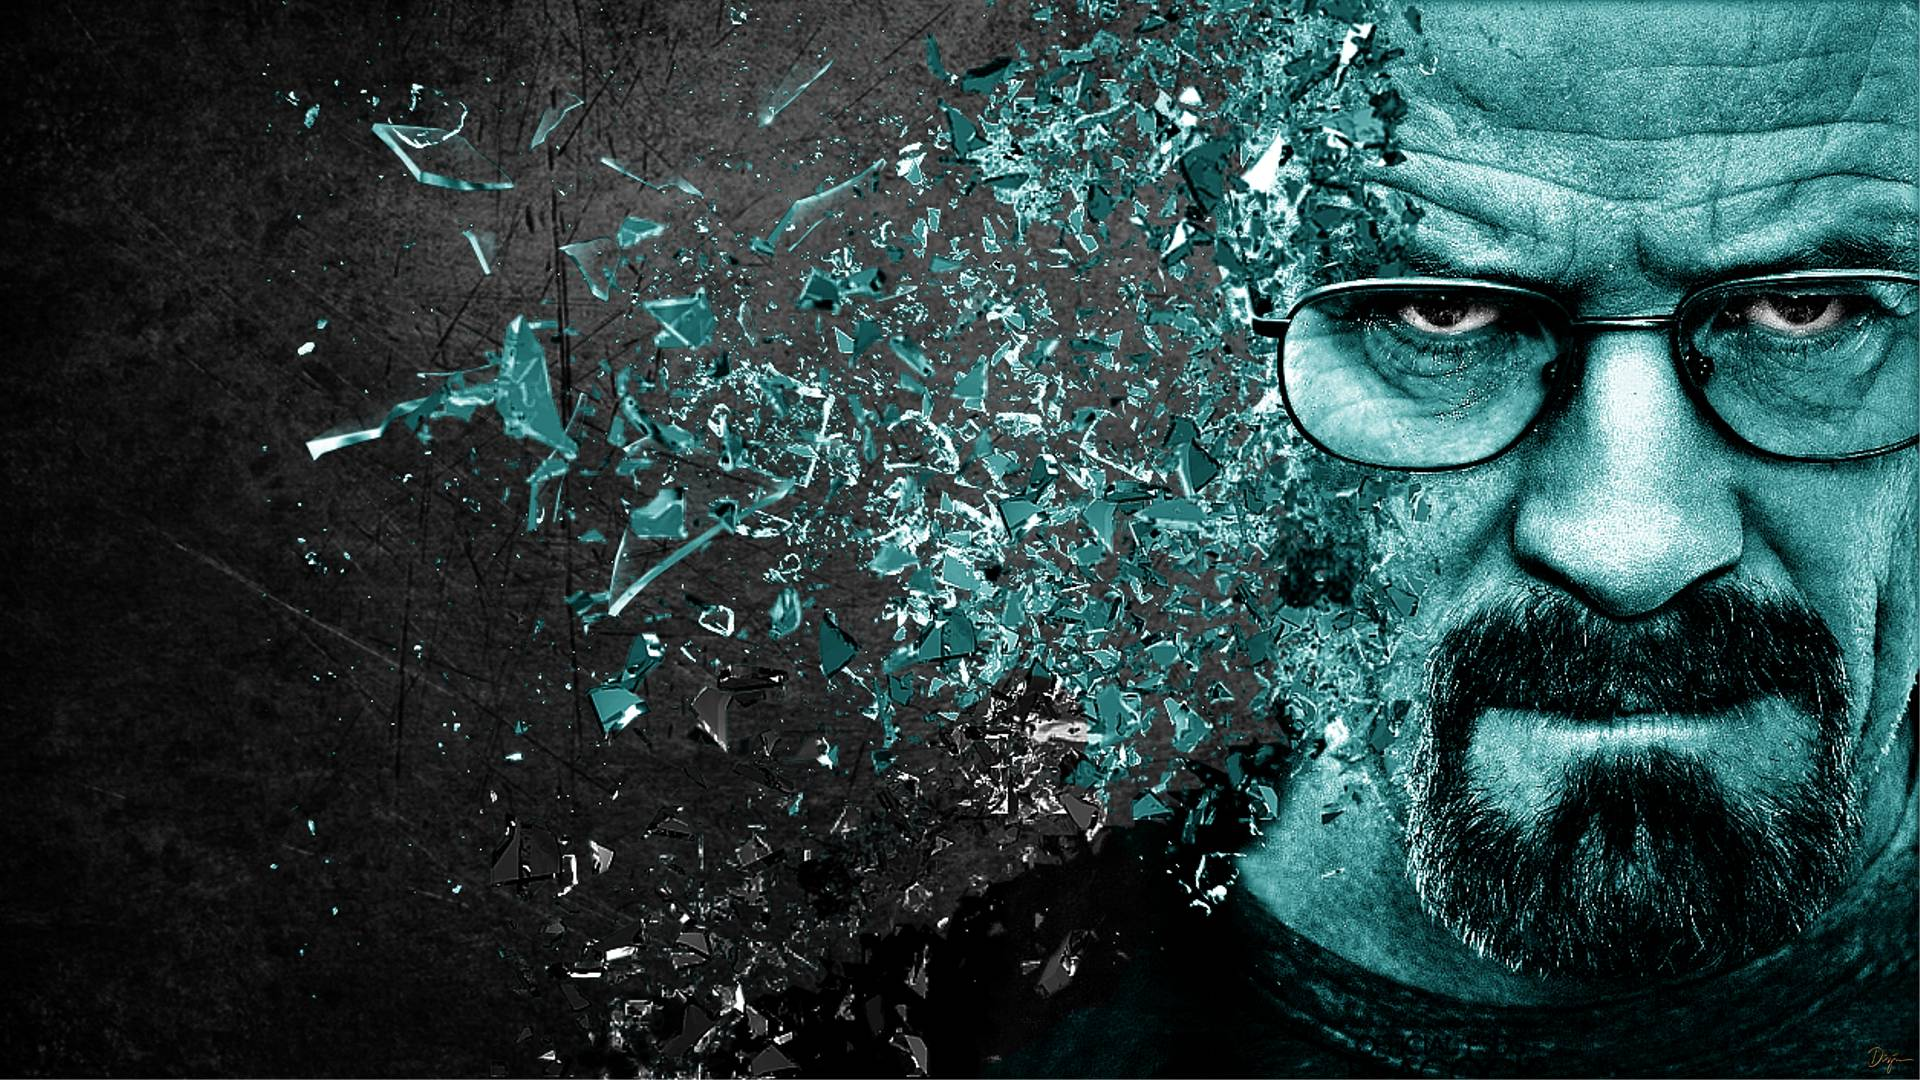 breaking bad 50 wallpapers - photo #17